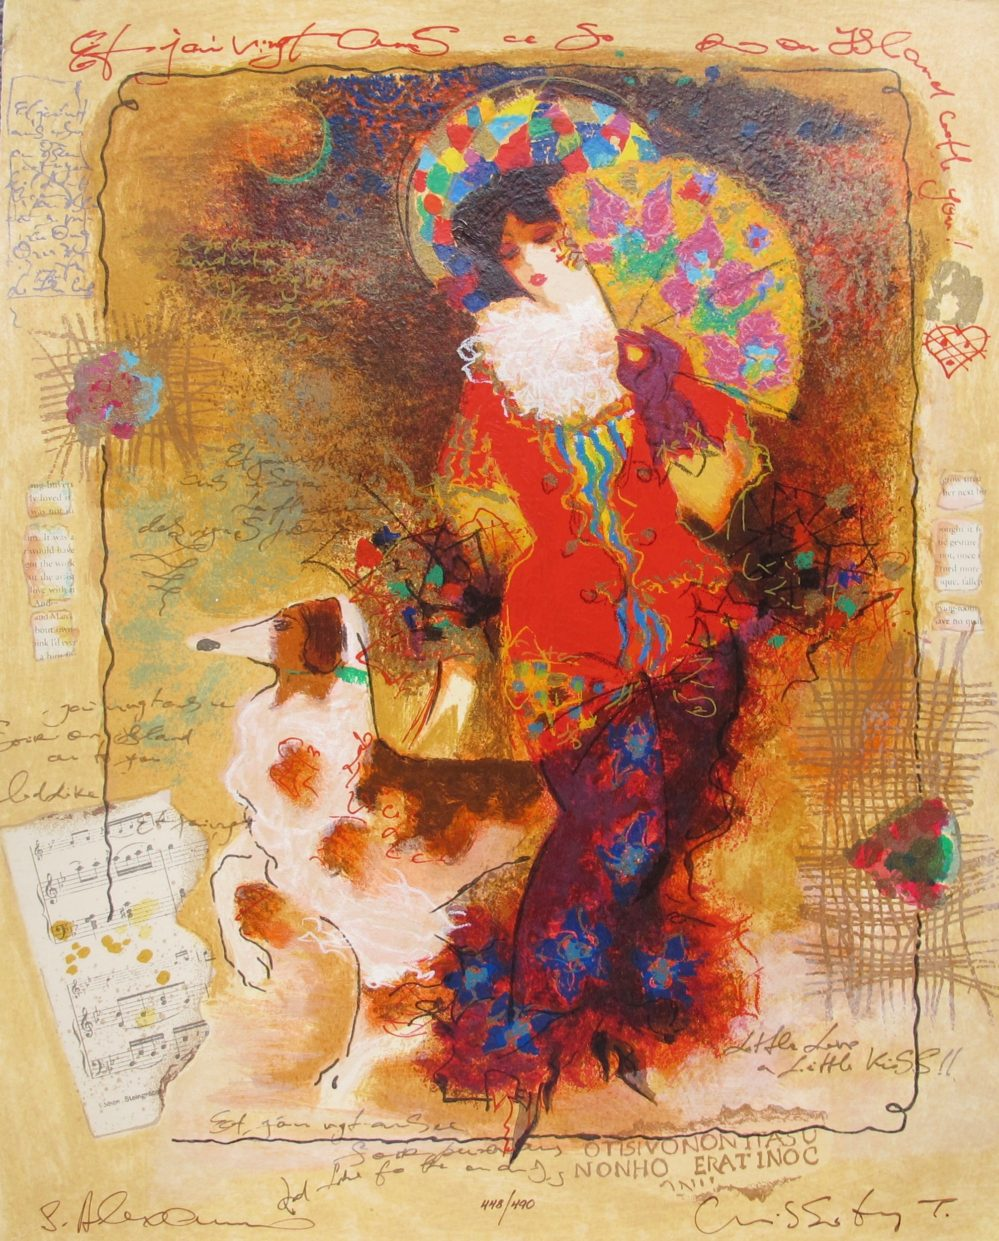 Alexander Galtchansky Tanya Wissotzky LADY WITH DOG Hand Signed Limited Edition Serigraph